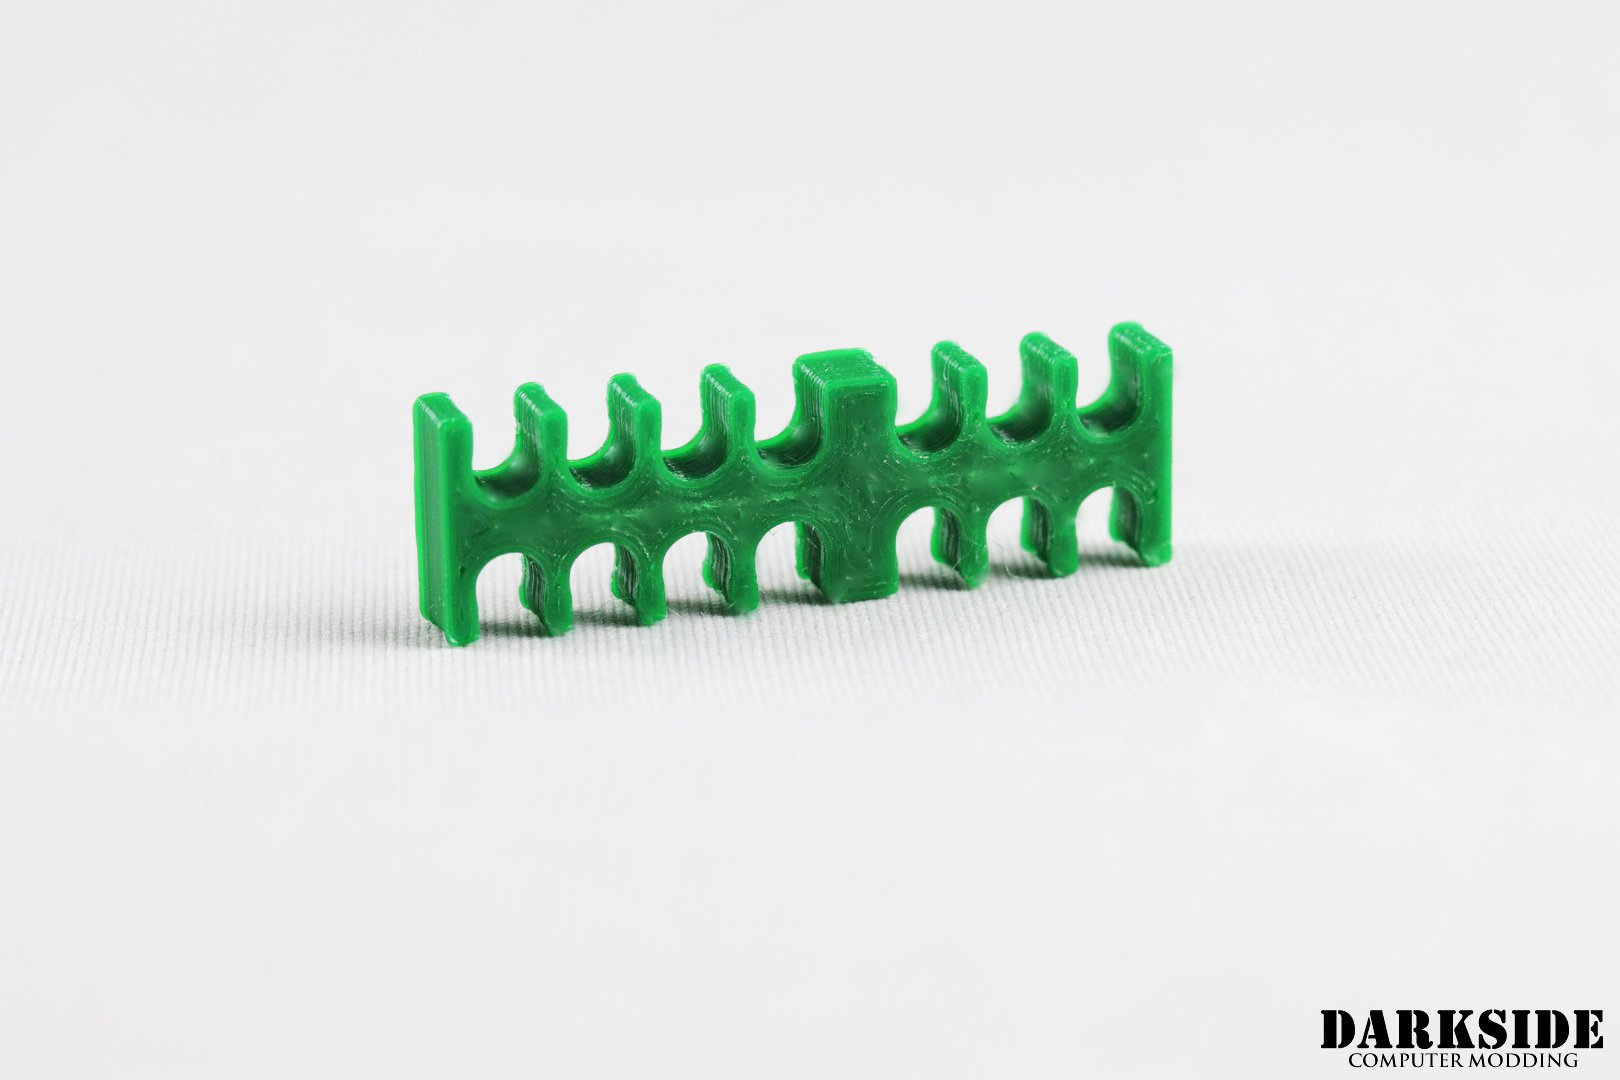 14-pin Cable Management Holder Comb – Dark Green